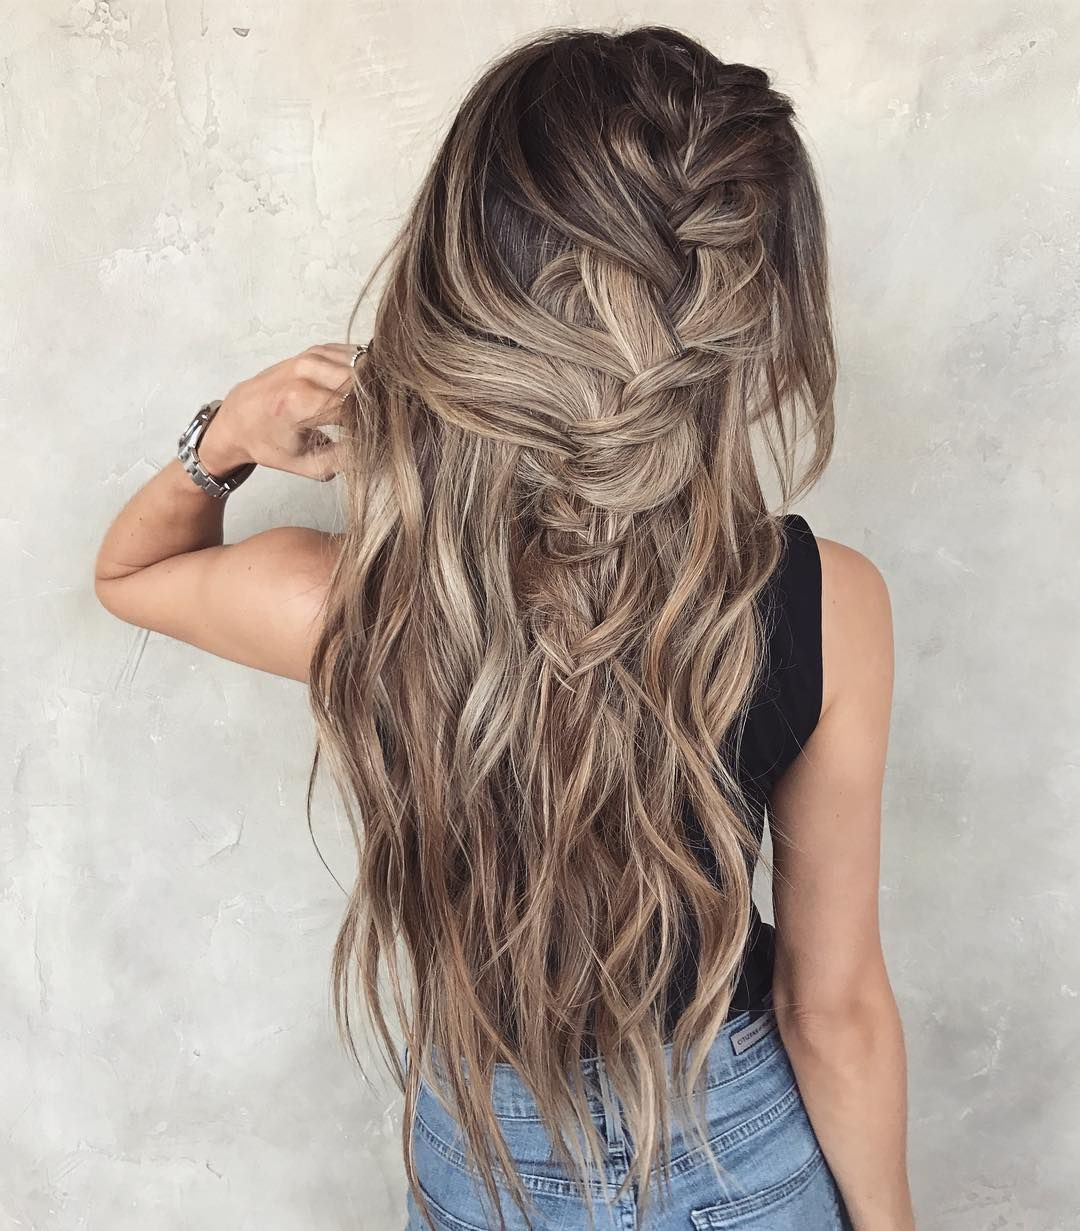 Messy Braided Hairstyle With Long Hair Women Long Hairstyles For Summer Braids For Long Hair Messy Braided Hairstyles Long Wavy Hair